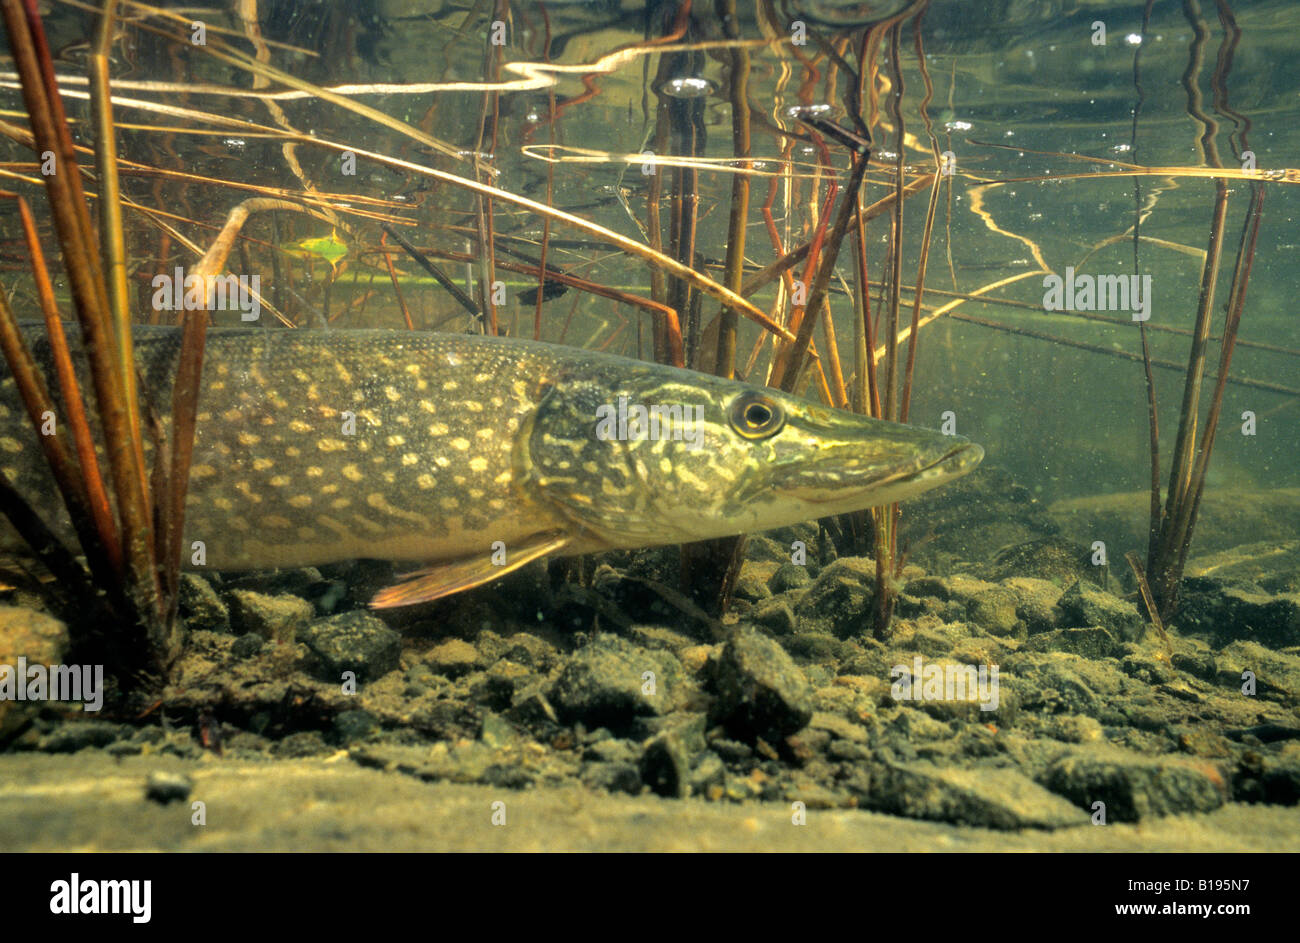 Northern pike (Esox lucius) basking in the warm shallows of a northern lake, Canada. Stock Photo